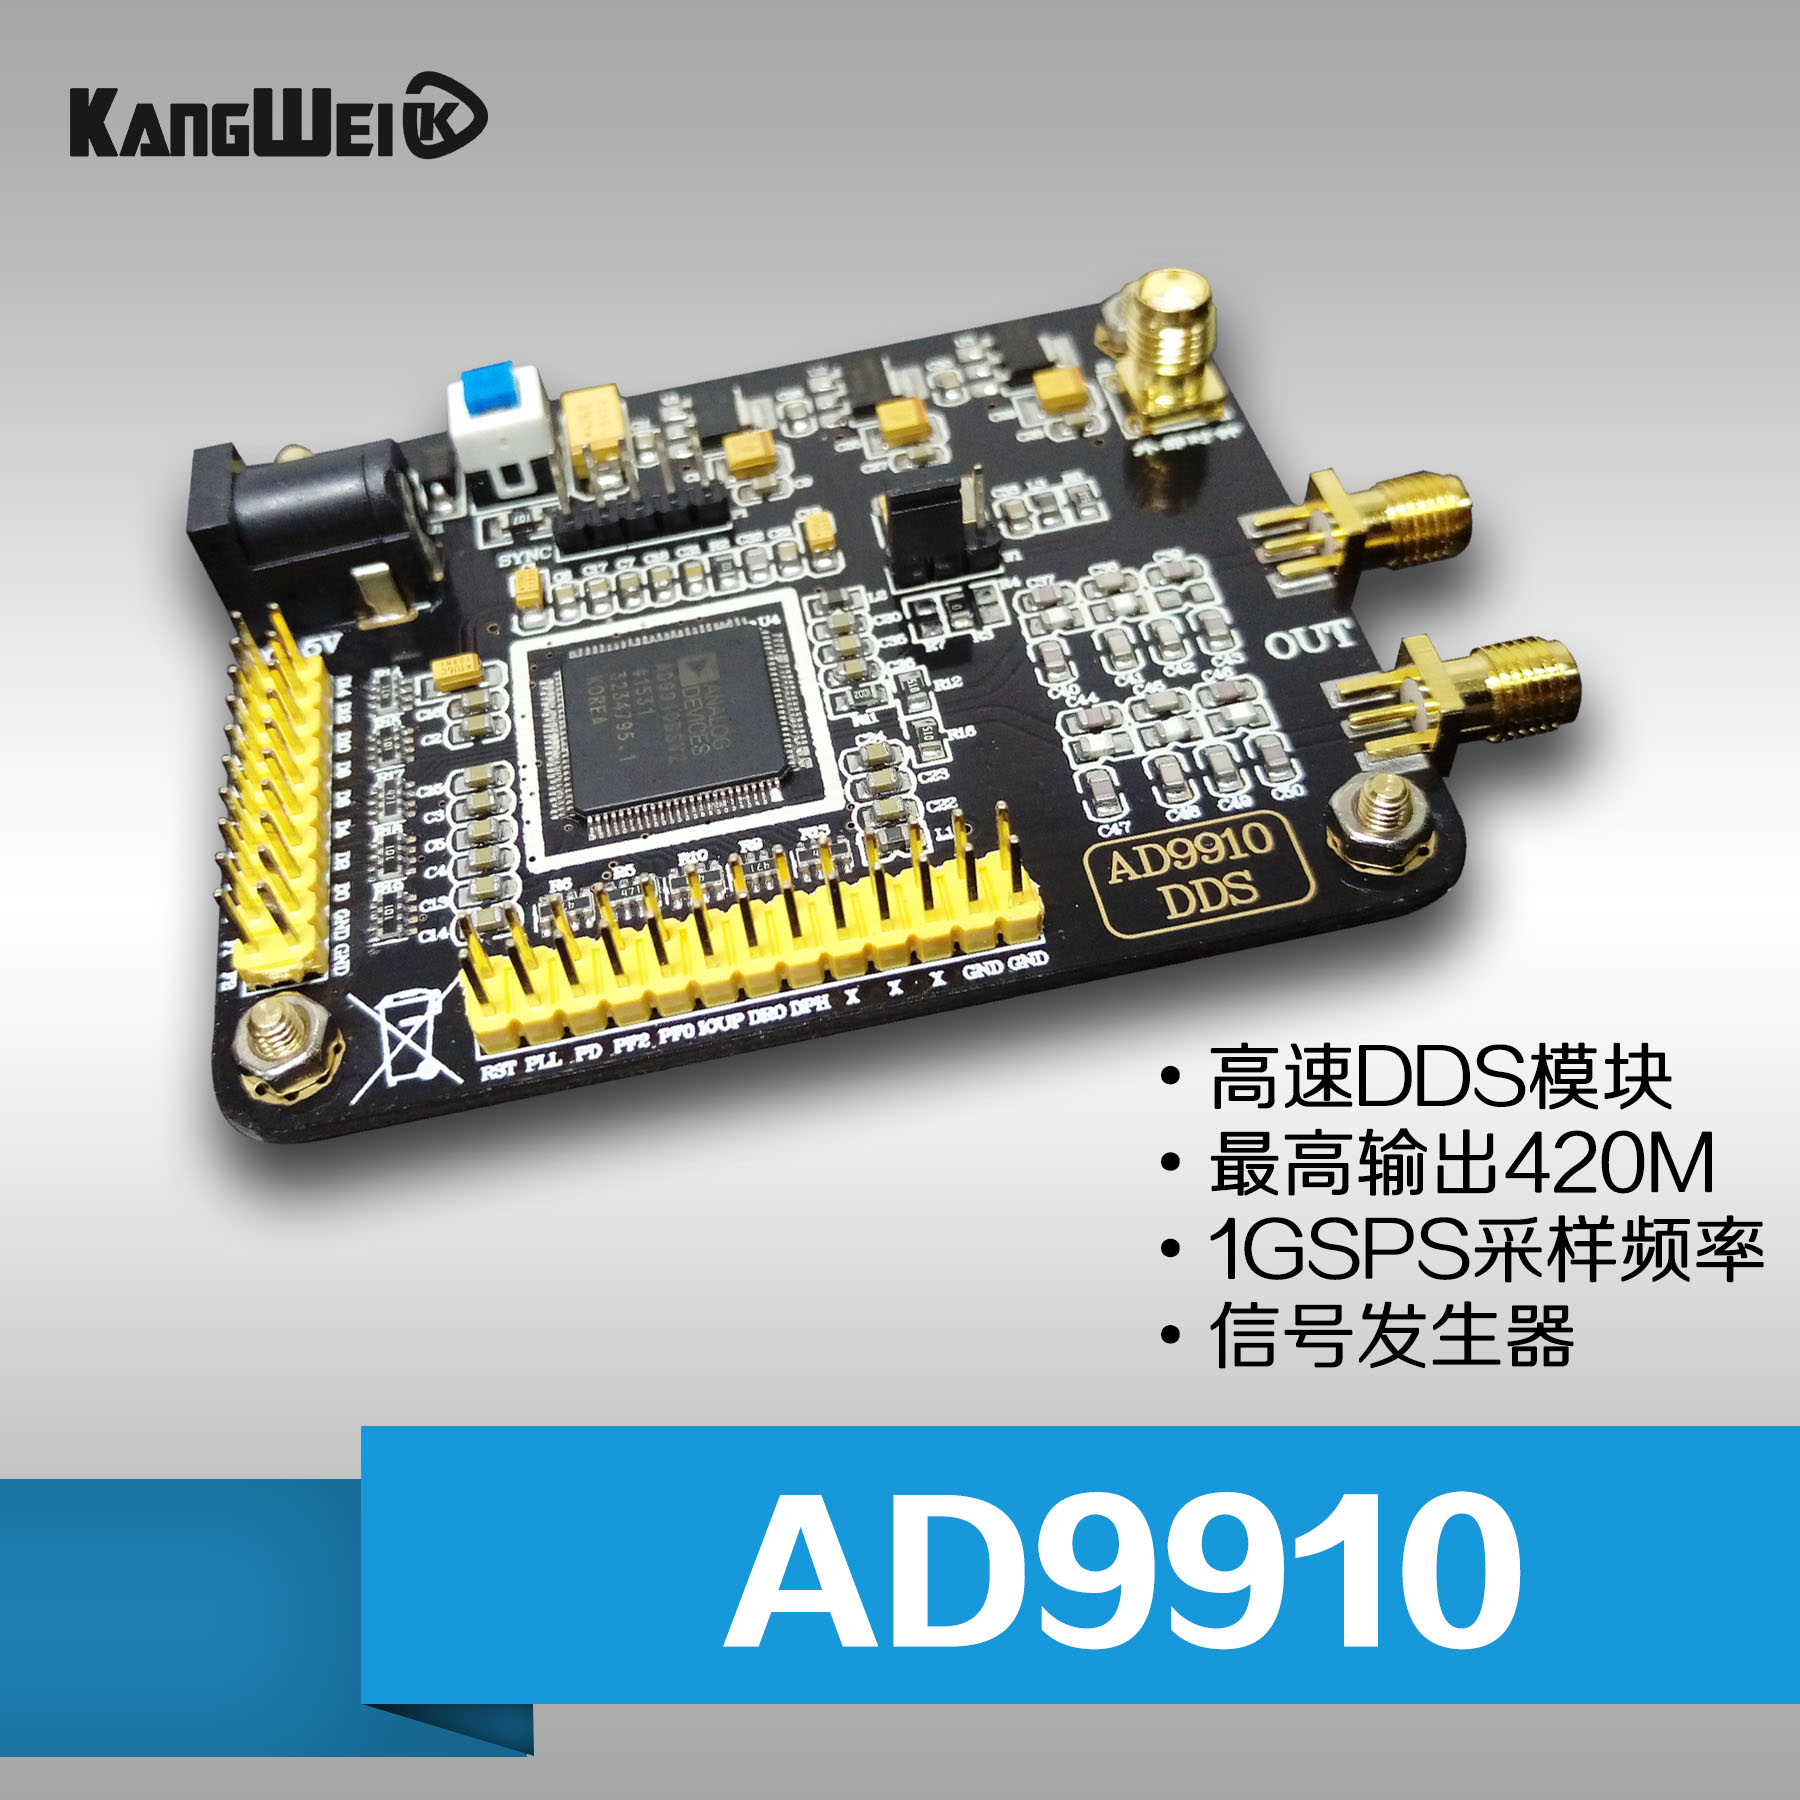 цена на AD9910 high speed DDS module output up to 420M 1G sampling frequency signal generator development board